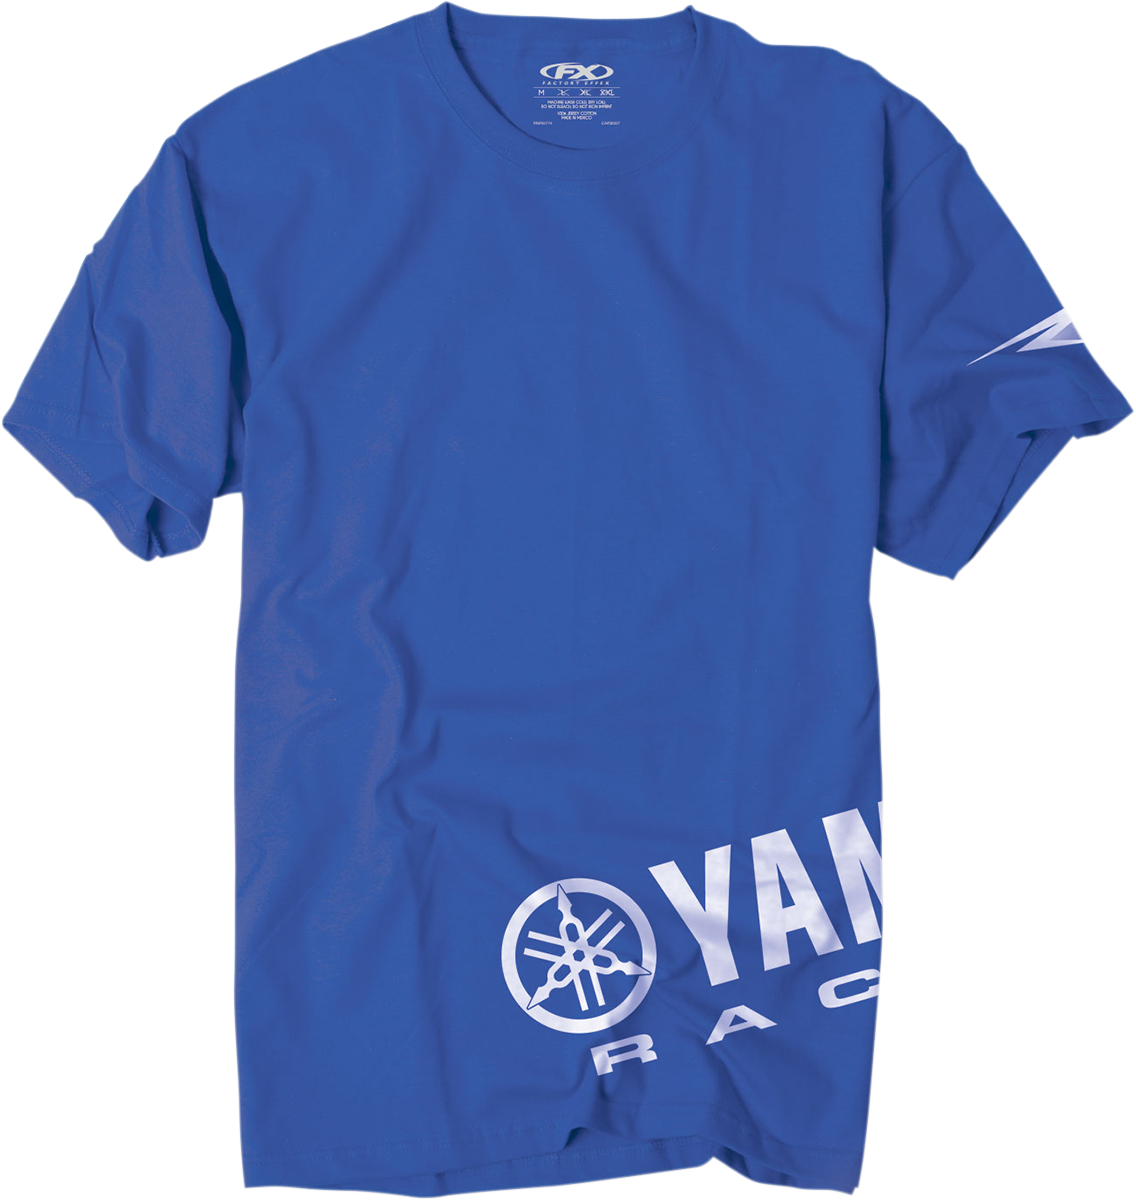 Tee yamaha wrap blue 2x products drag specialties for Graphic edge t shirt design